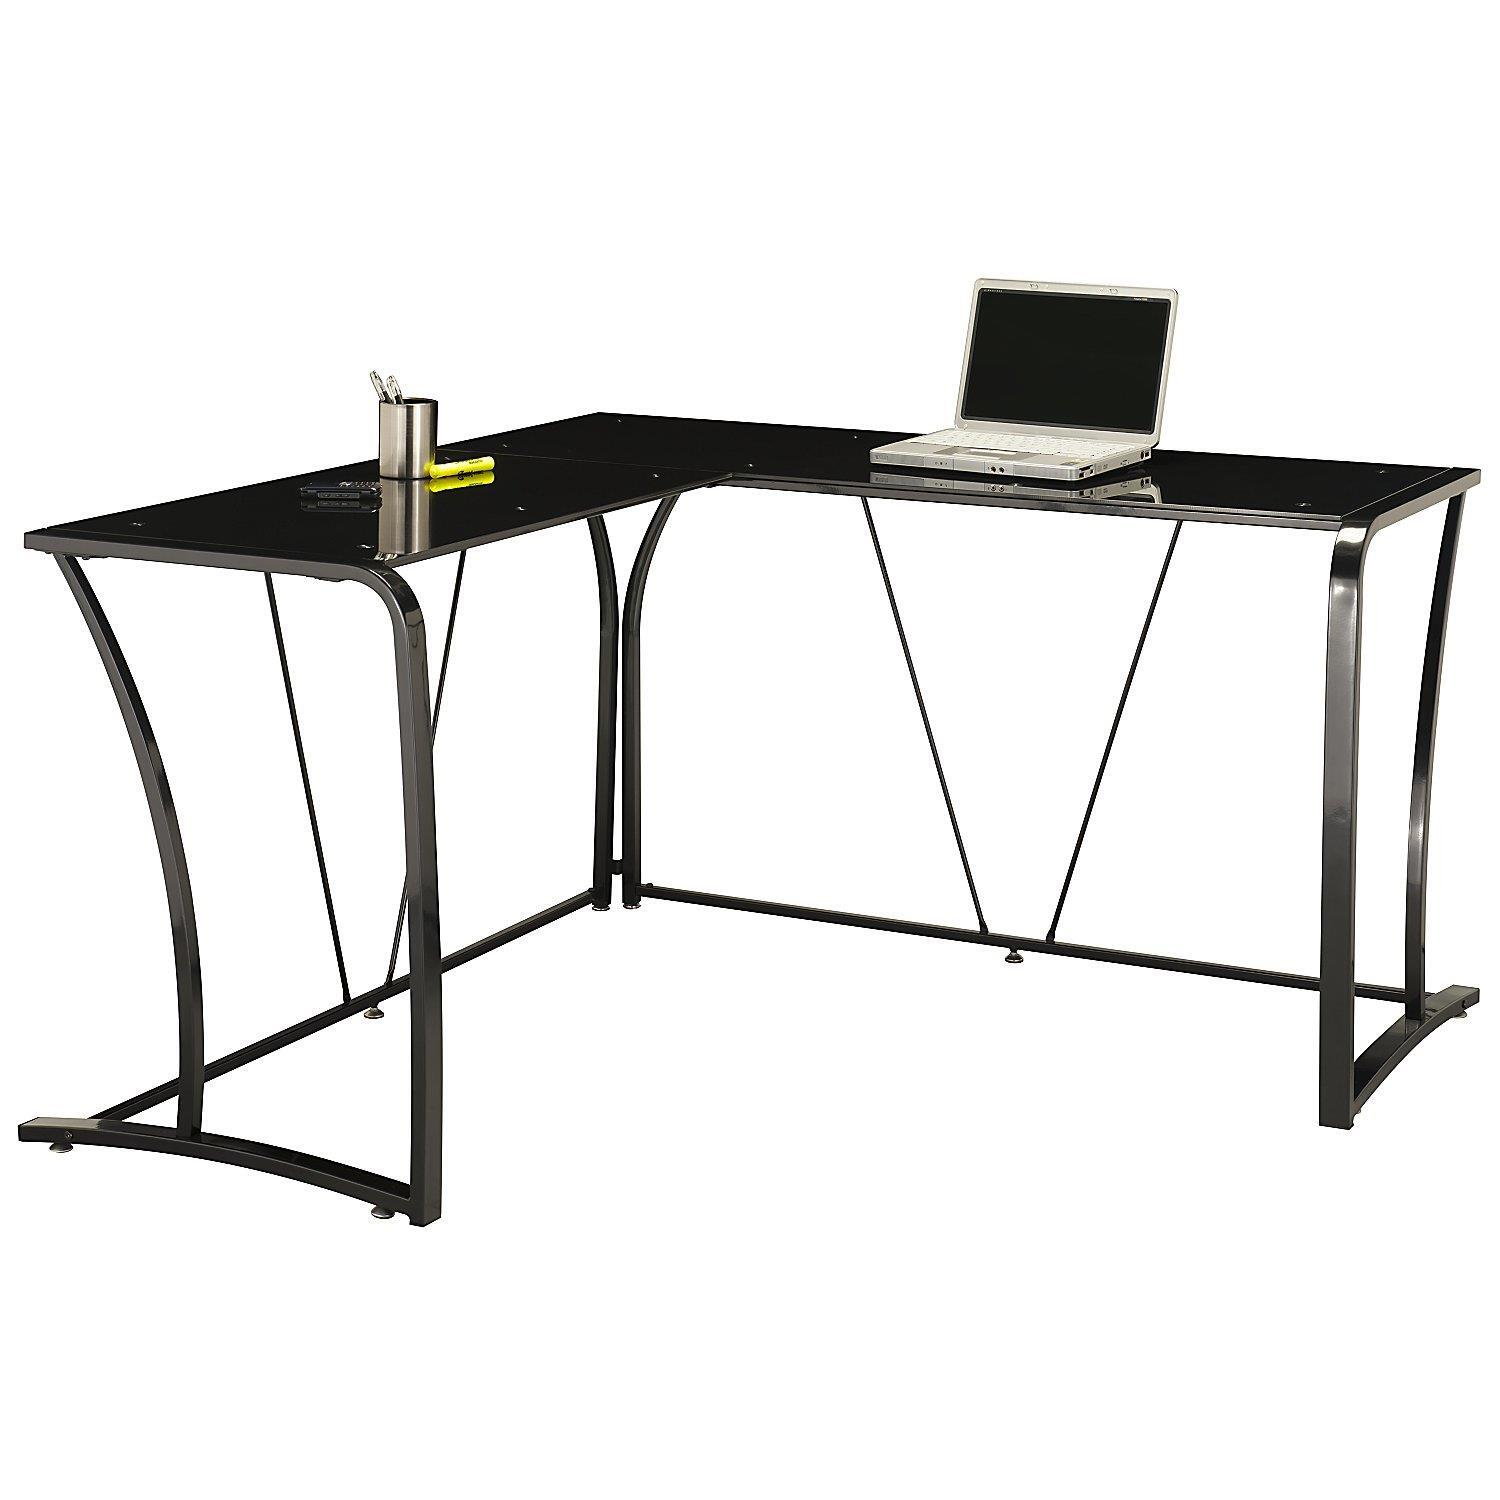 steel chair bush home depot dining chairs furniture metal and glass l desk by oj commerce my72715